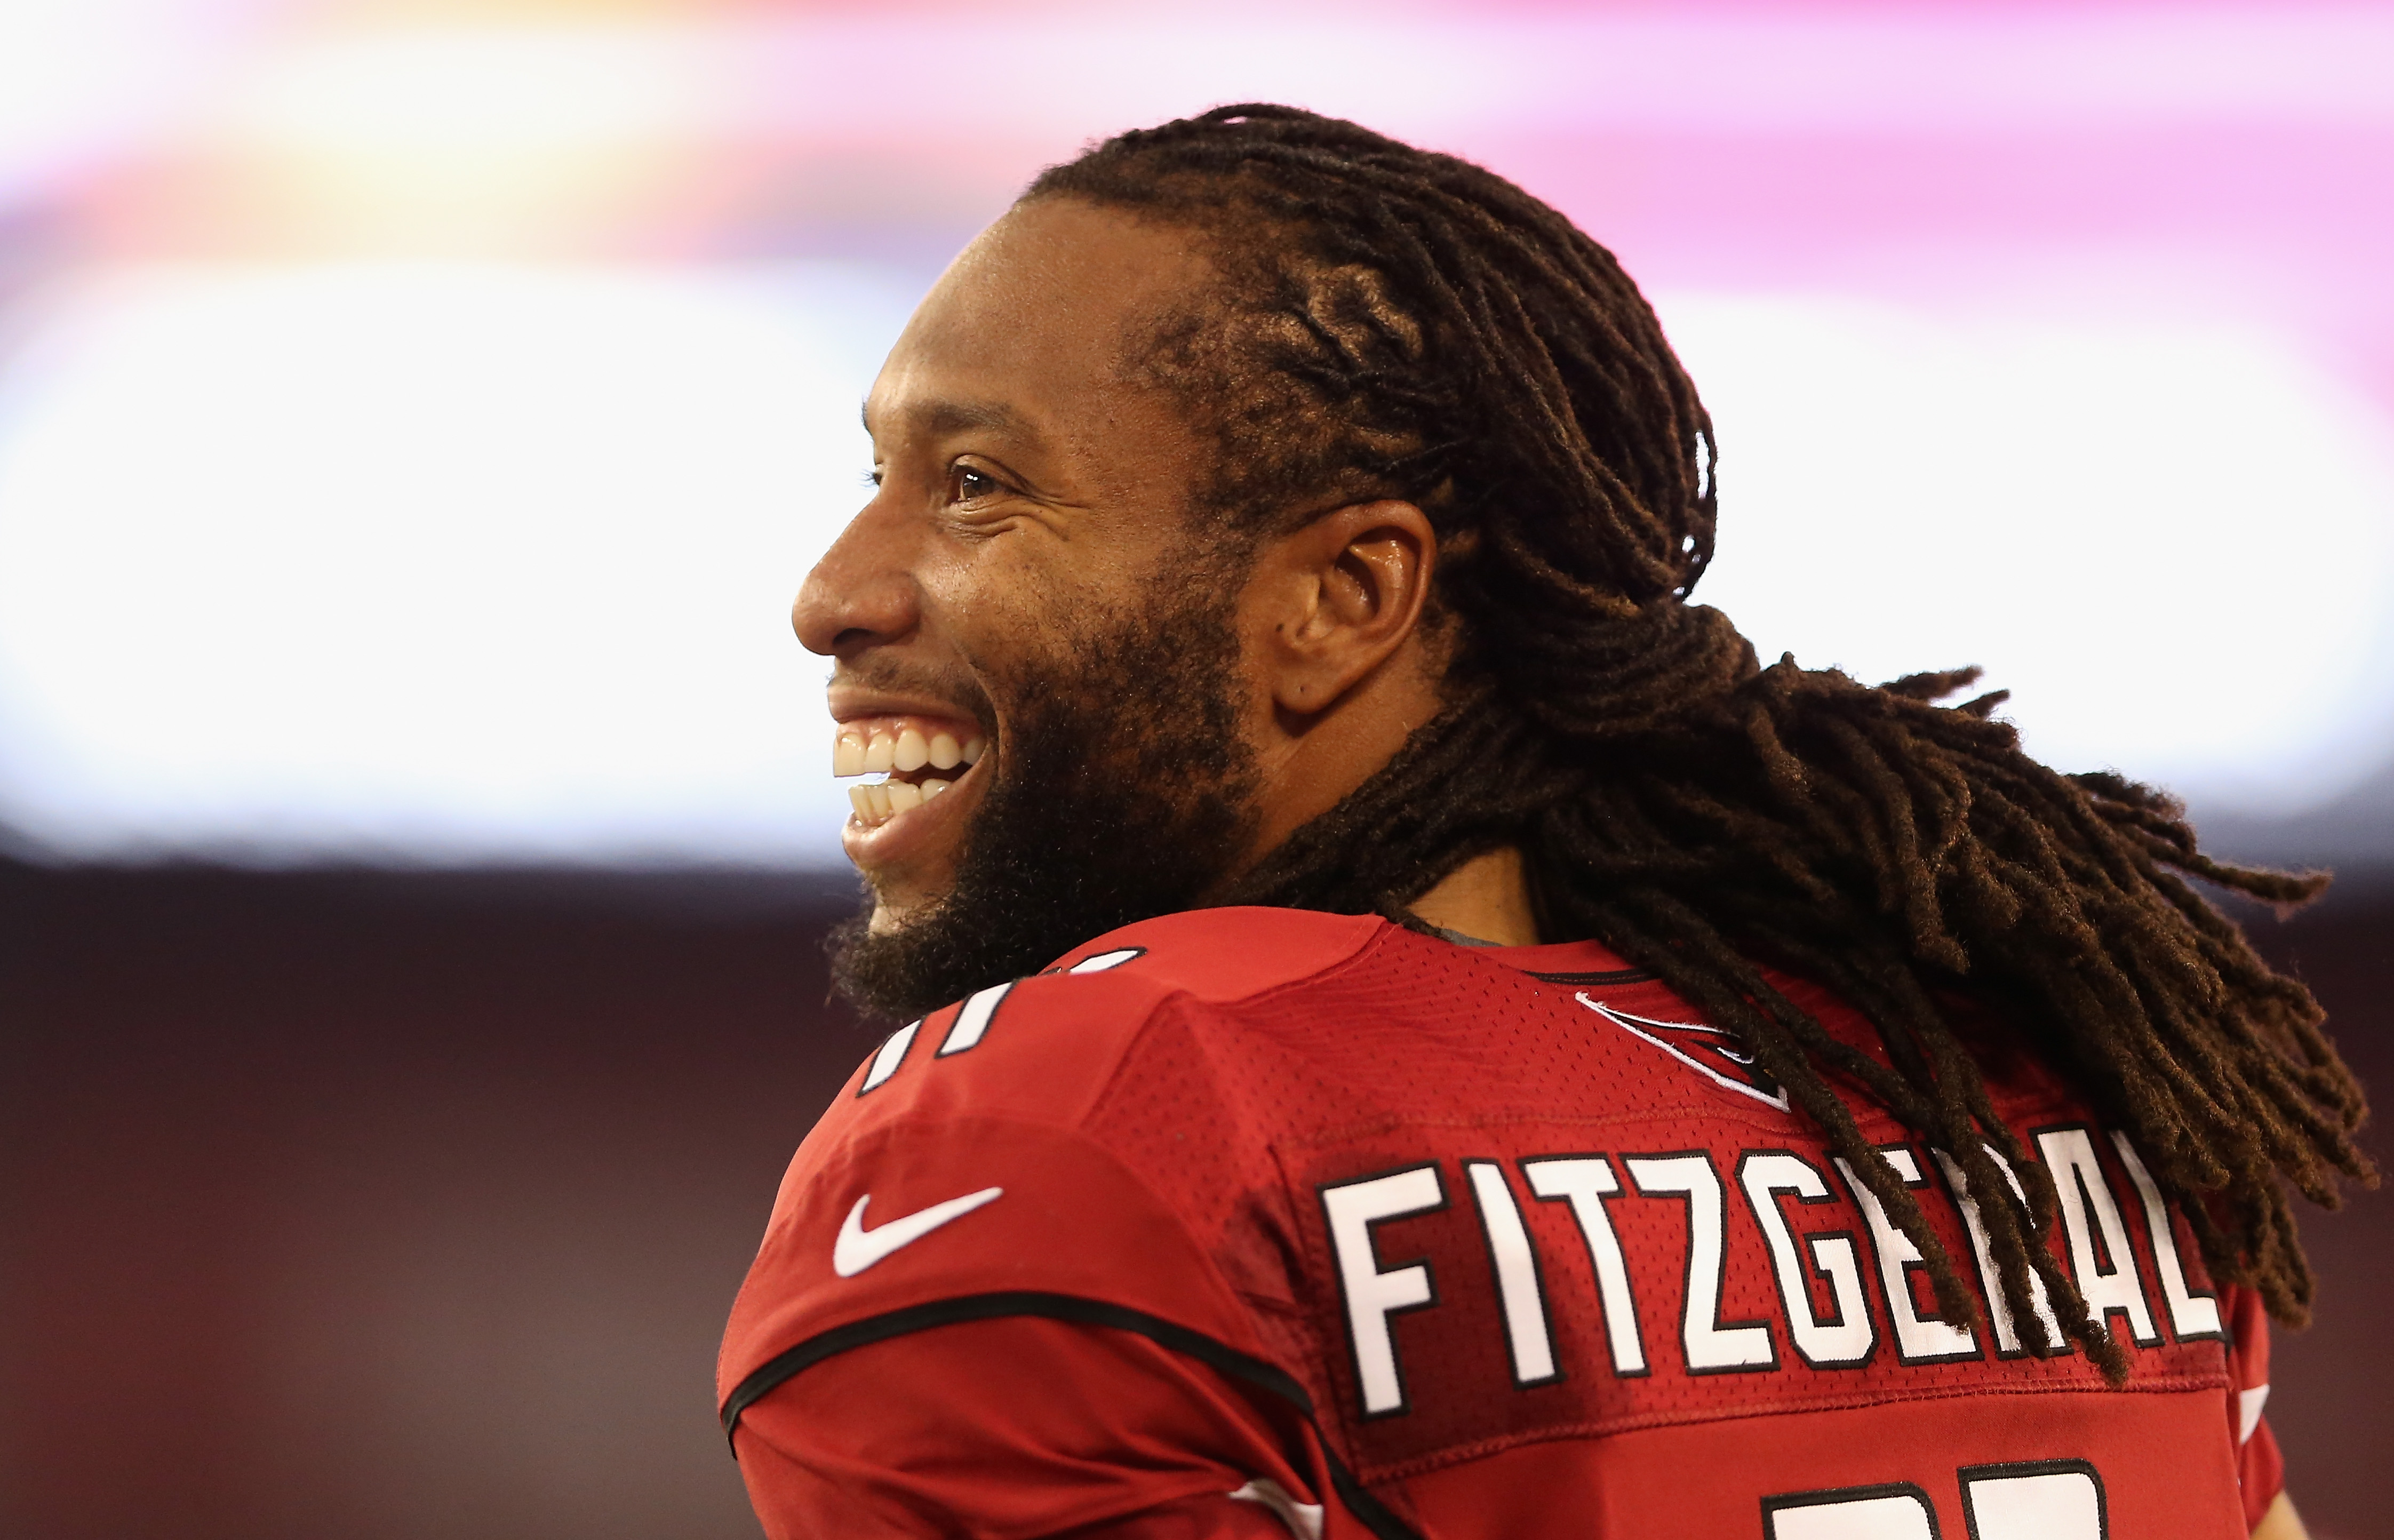 A one-year contract extension with the Cardinals will keep Larry Fitzgerald in Arizona through 2018.